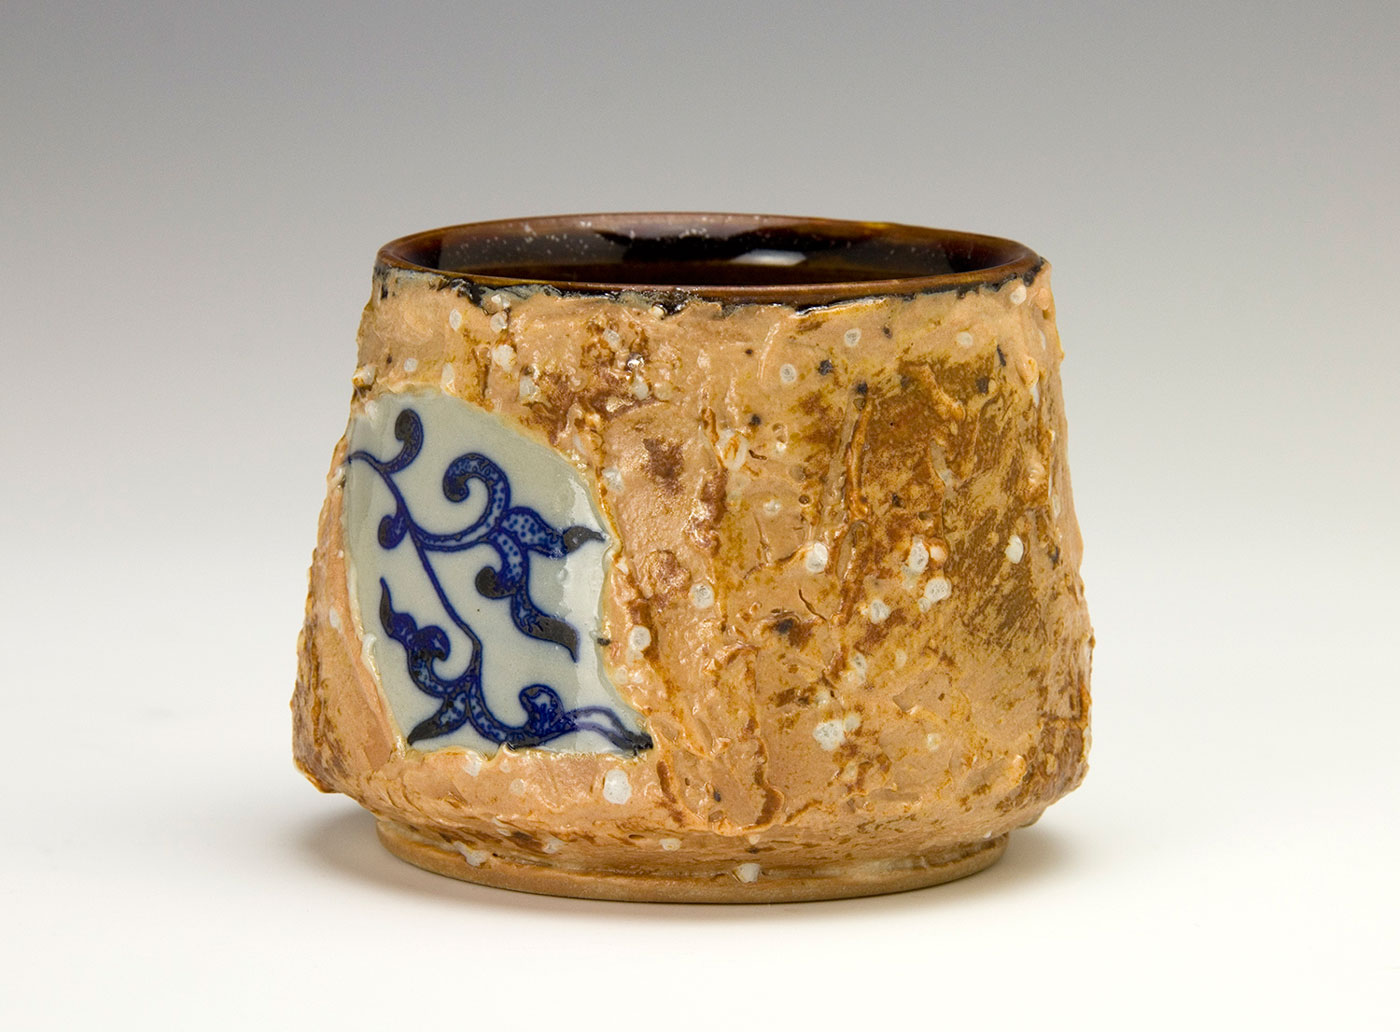 Whiskey-Art-Cup-Wild-Clay-Bruce-Gholson-Seagrove-Pottery.jpg